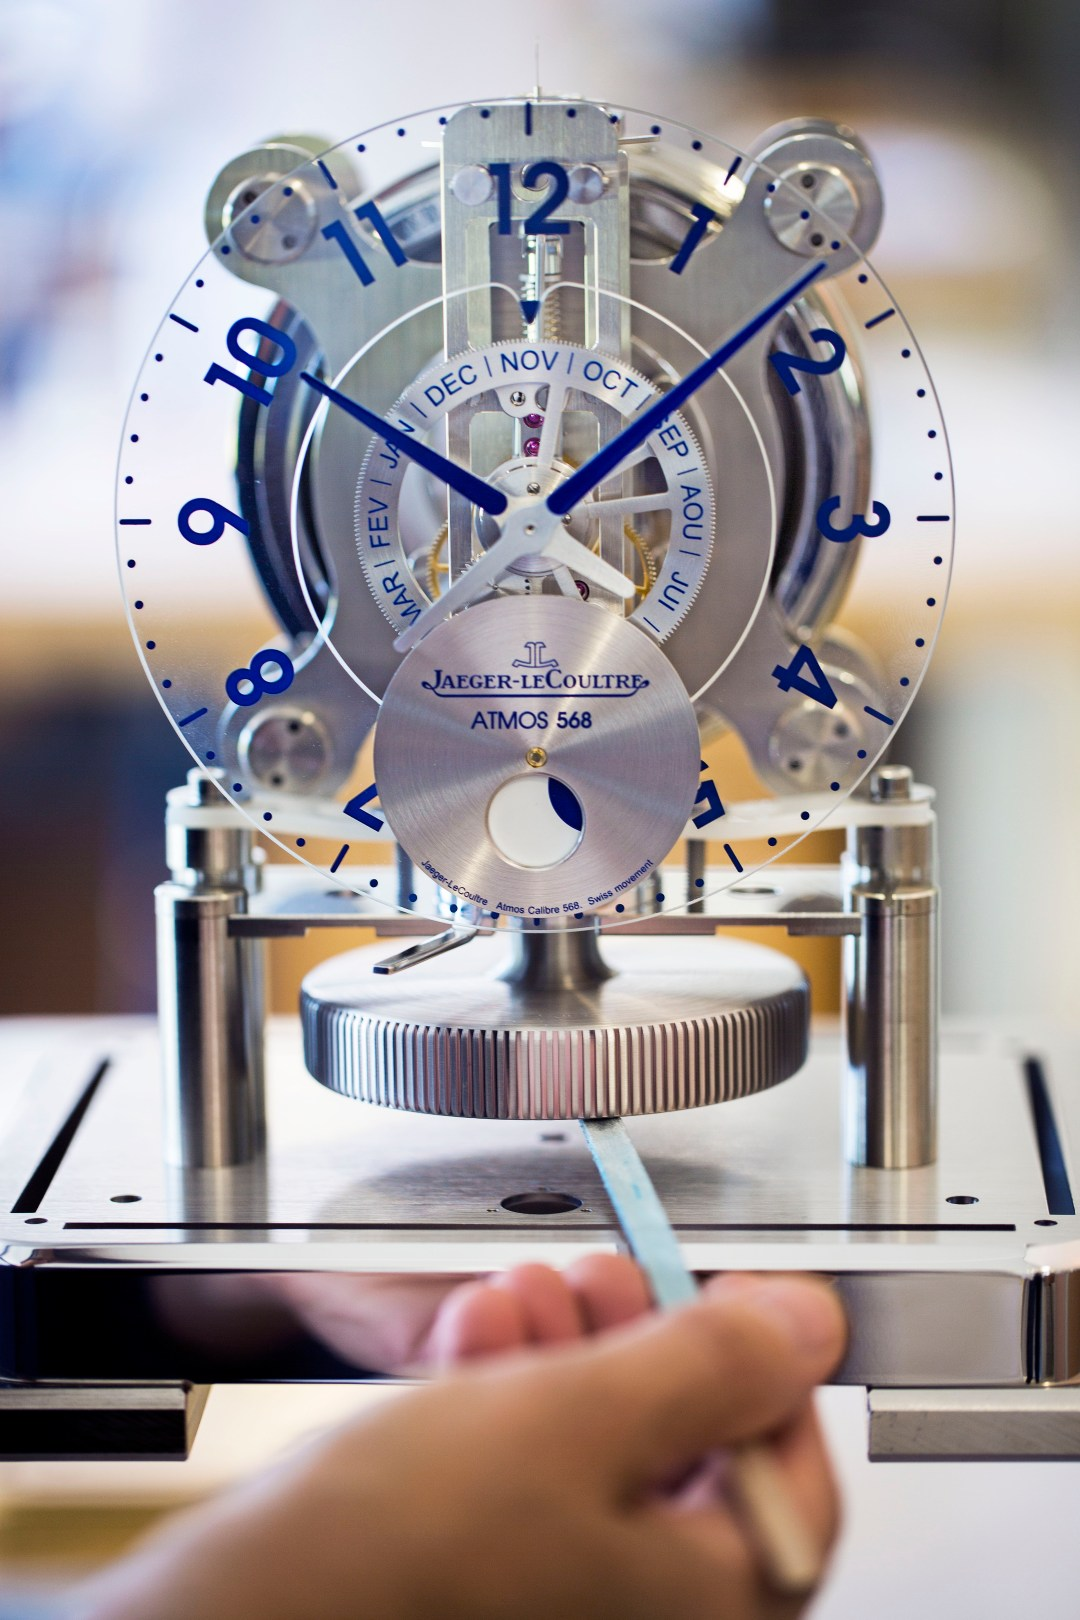 Making of Atmos 568 by Marc Newson © JohannSauty - Jaeger-LeCoultre (8)